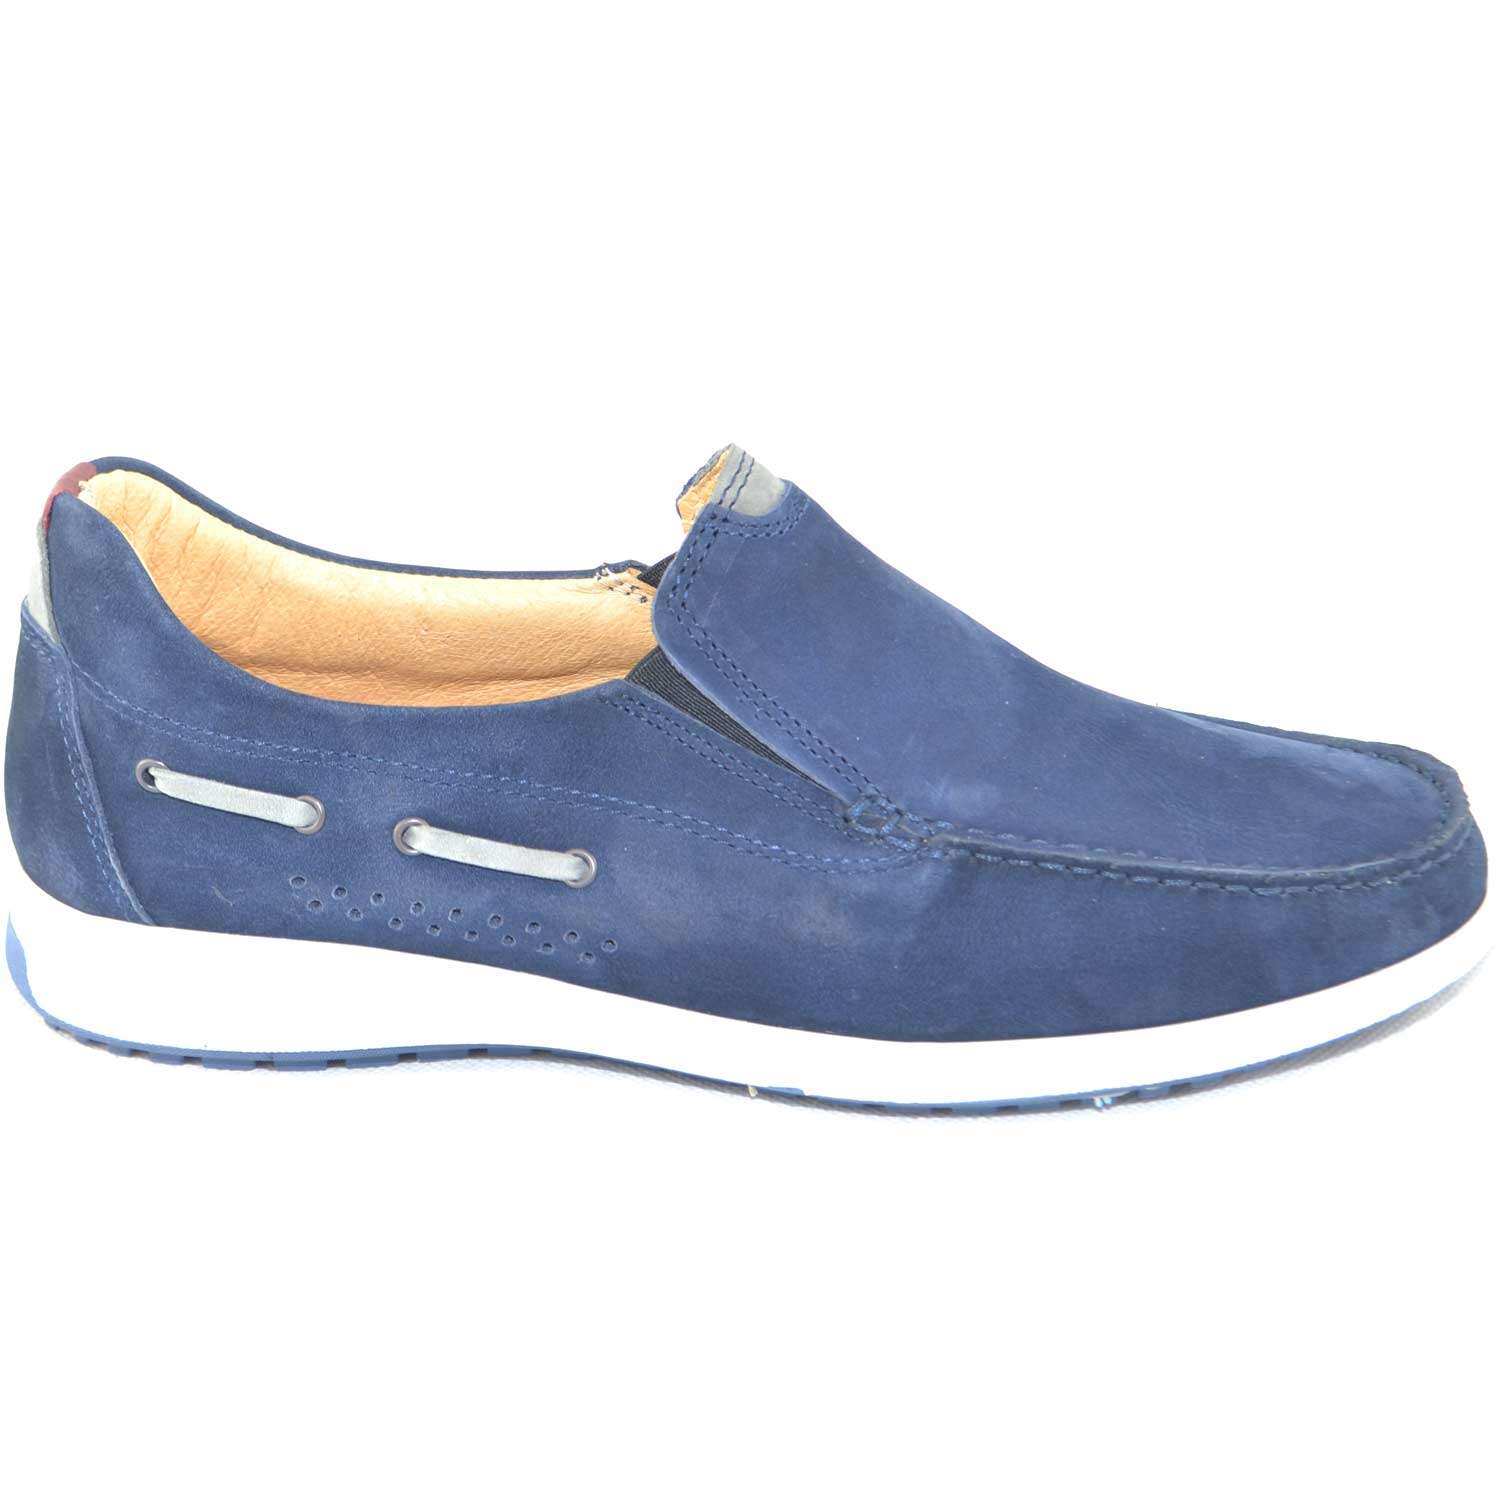 Scarpe uomo man casual made in italy mocassino interland comfort in vera pelle di nabuk blu fondo antiscivolo